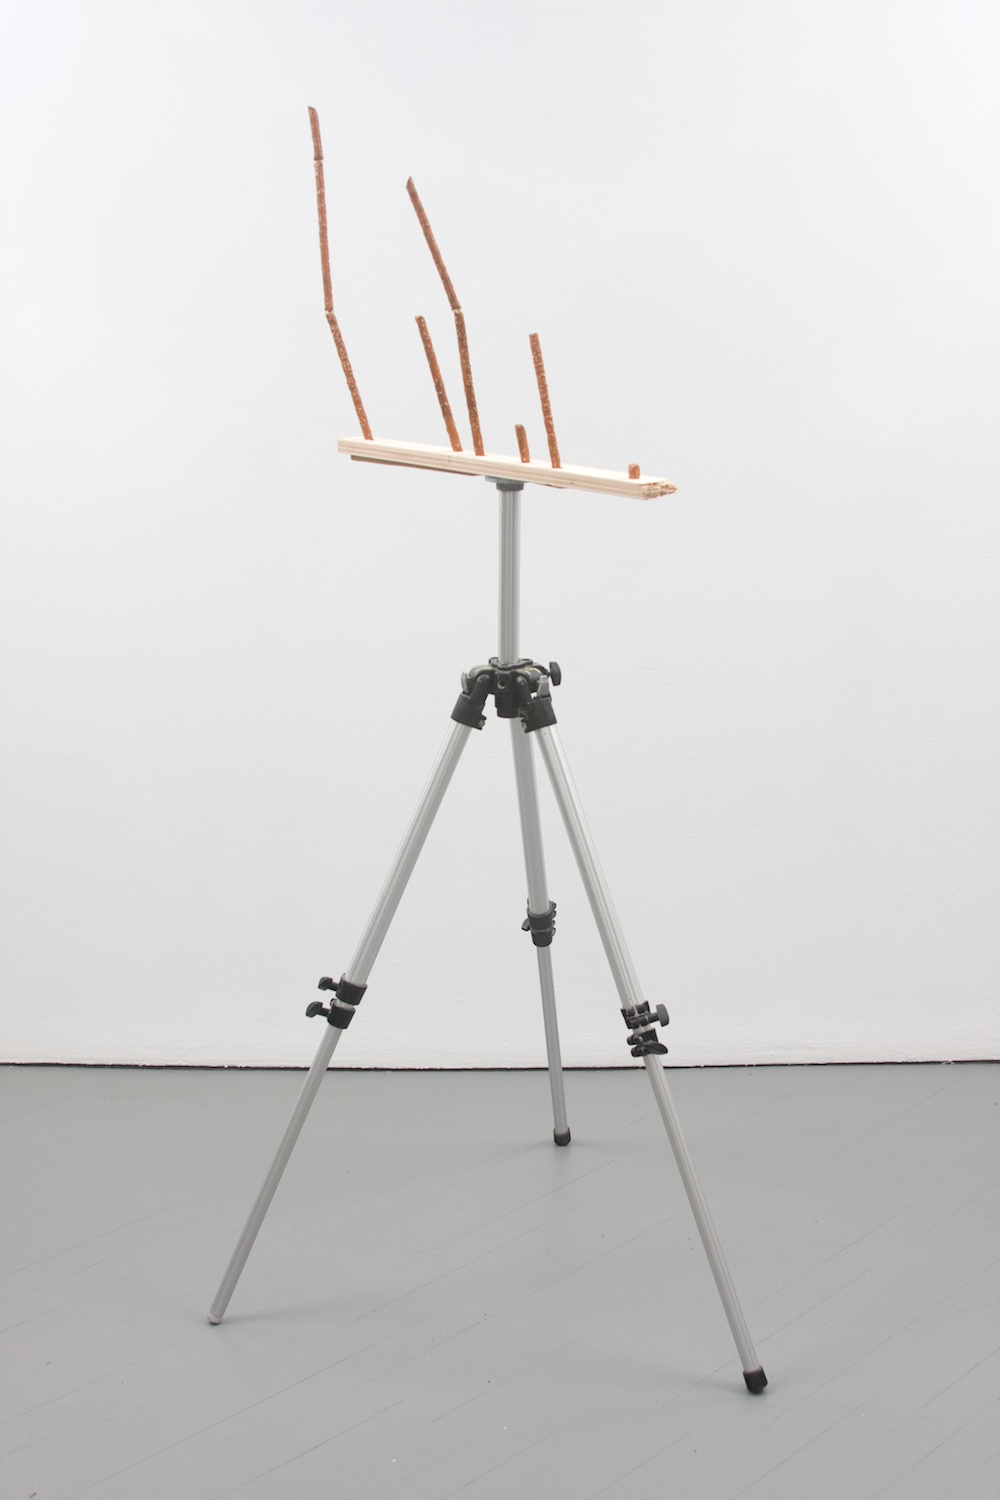 Chris Bradley  Target #5  2011 Painted cast bronze, wood, tripod, glue 37h x 9w x 13d in CB005